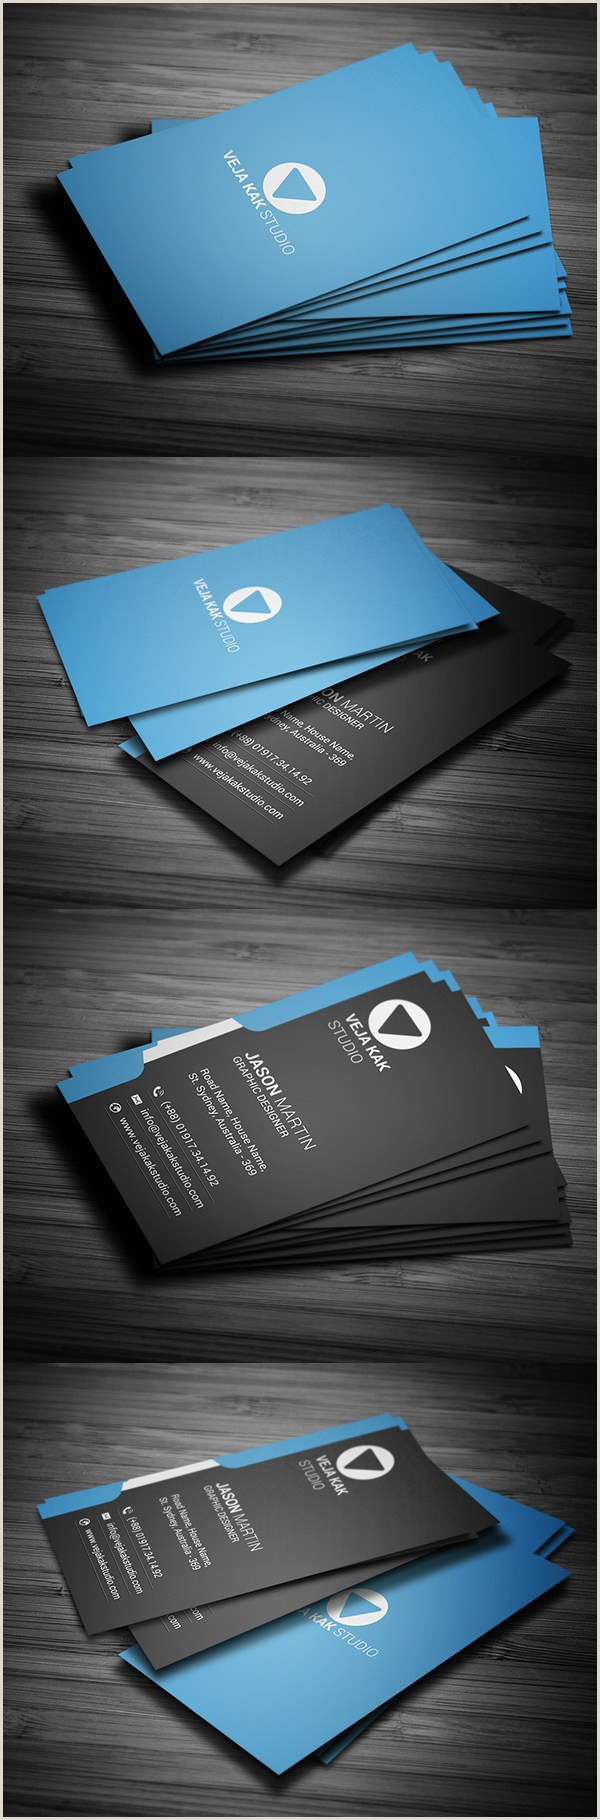 Unique Graphic Design Business Cards Modern Vertical Business Card